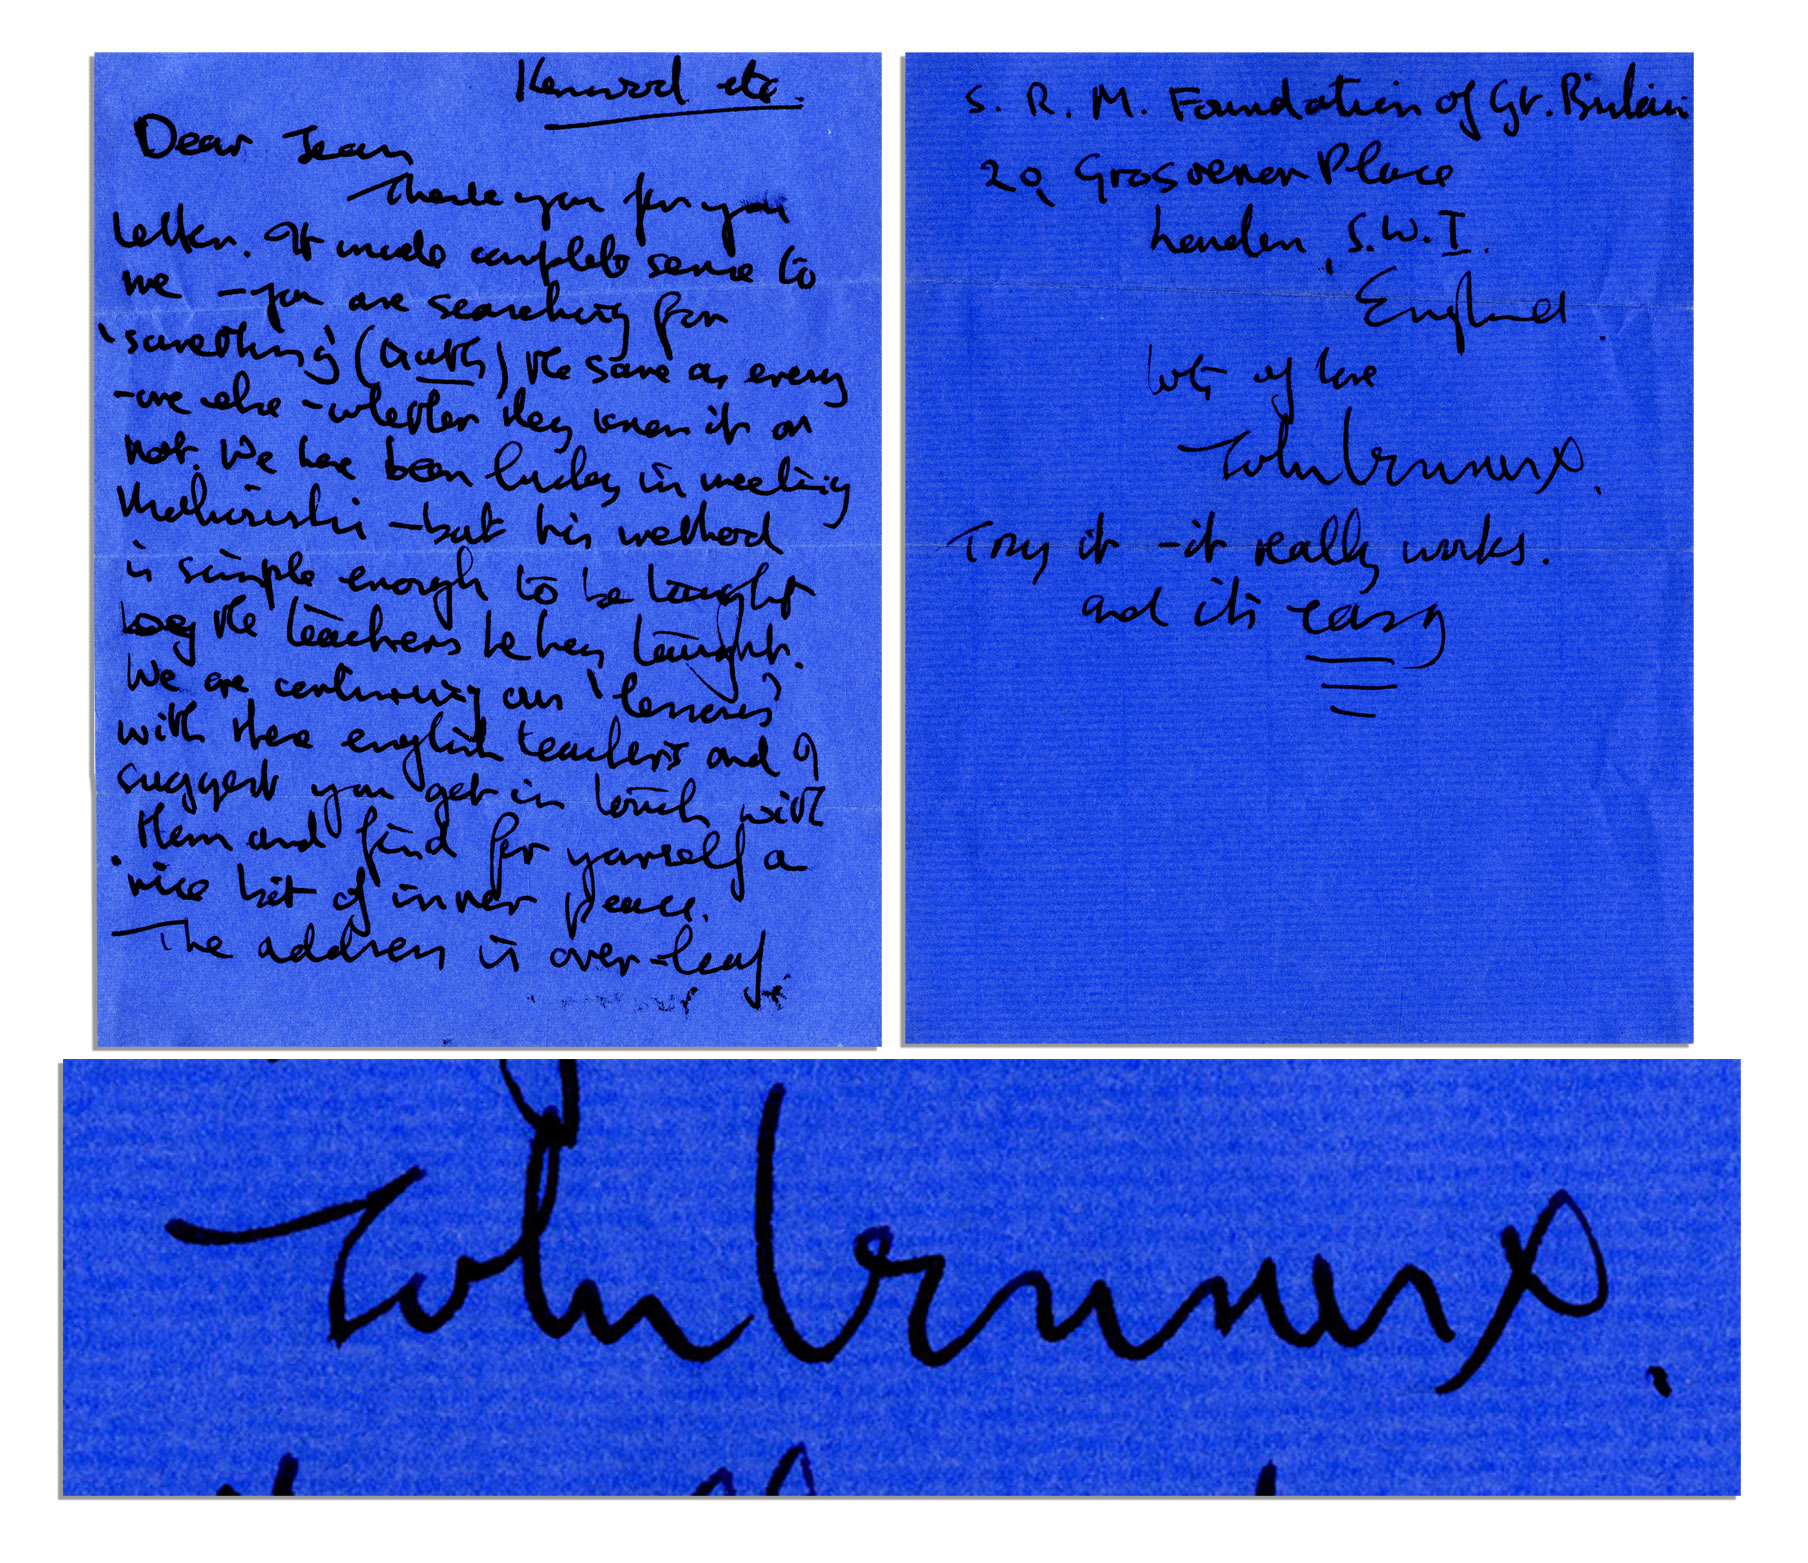 "Beatles memorabilia Intimate Handwritten Letter by John Lennon on Transcendental Meditation -- ""…you are searching for 'something' (truth) the same as every one else - whether they know it or not. We have been lucky in meeting Maharishi…"" -- With PSA/DNA COA"